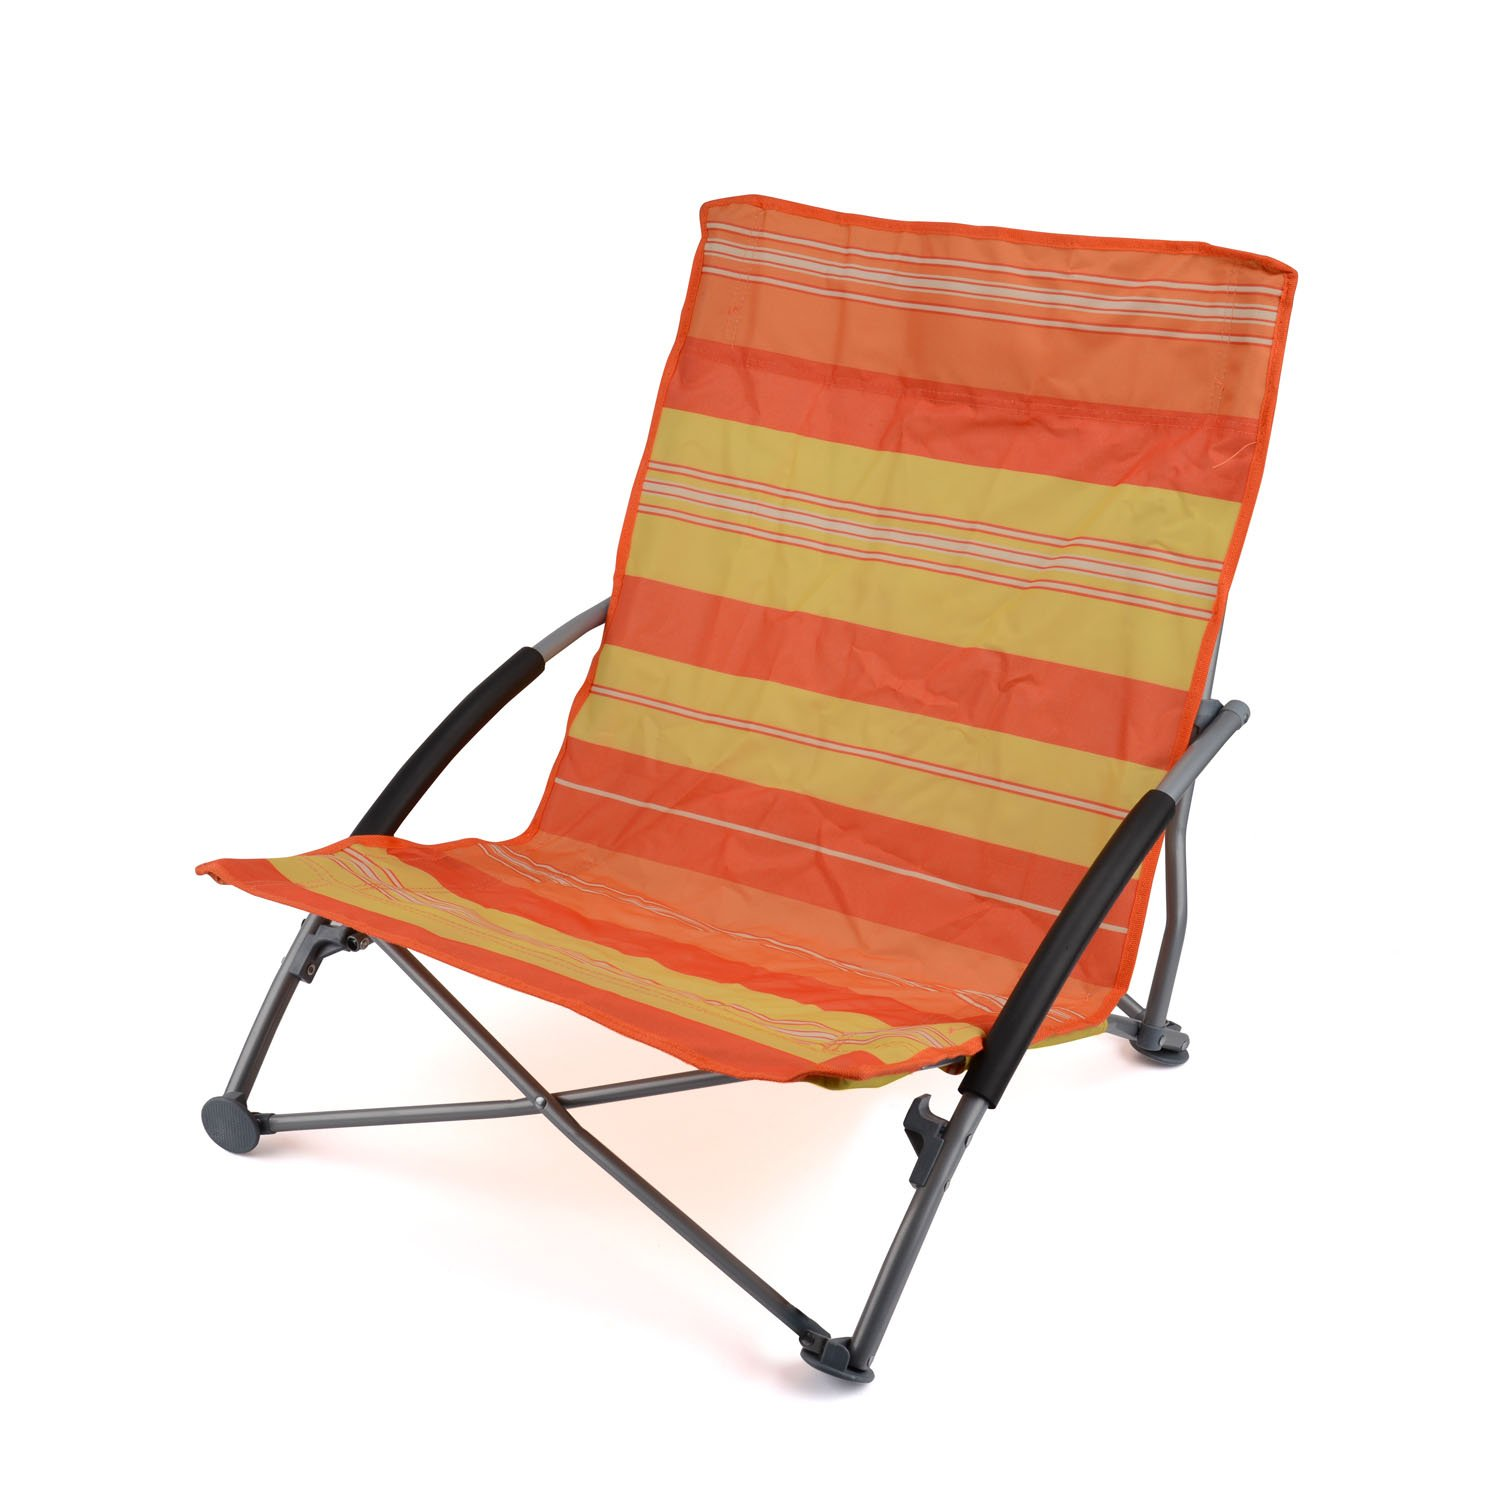 Trail Sisken Camping Chair Orange Amazon Sports & Outdoors